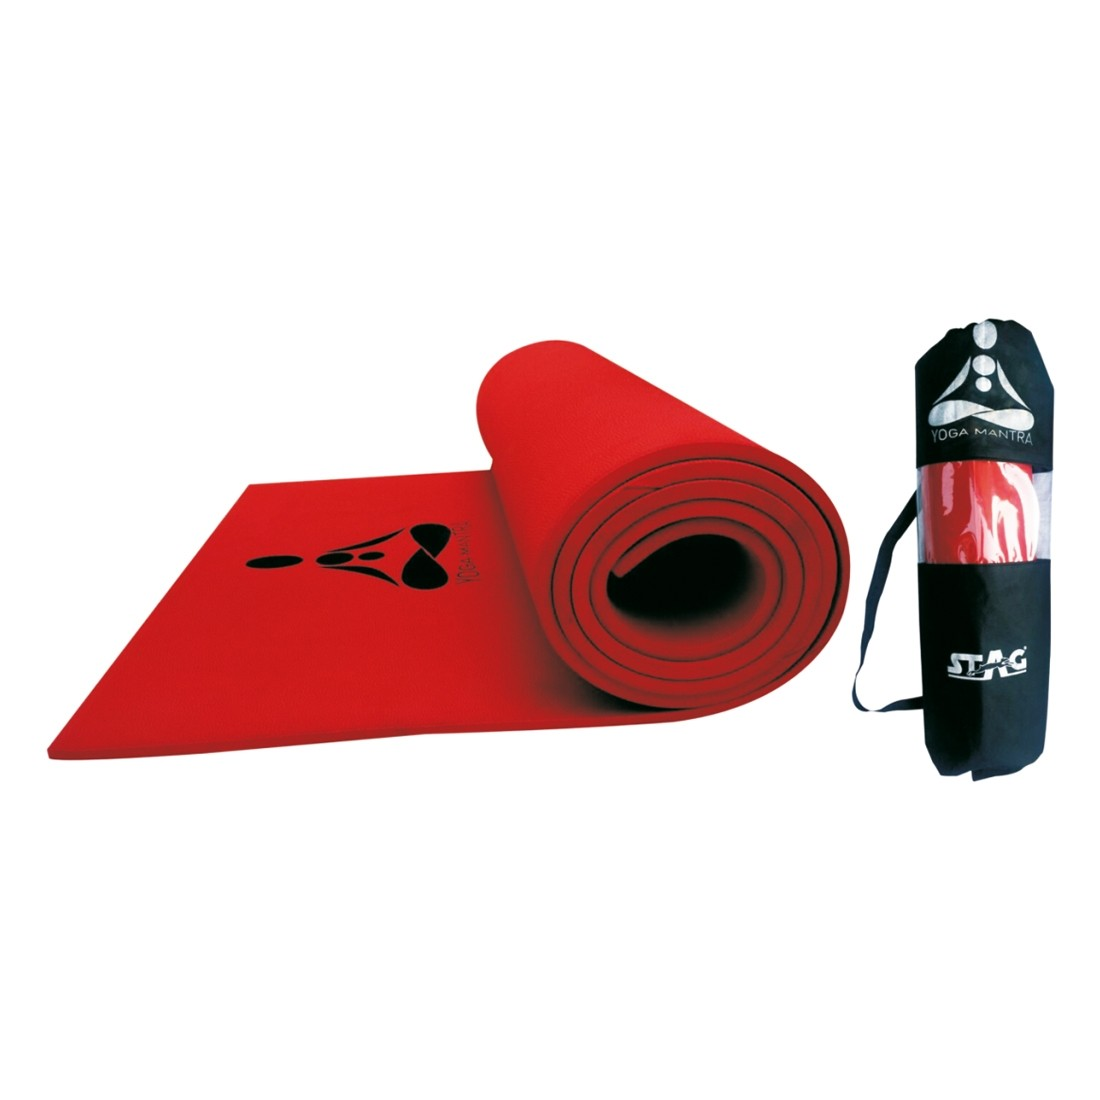 YOGA MANTRA BLACK/ GOLDEN MAT 4 mm with bag